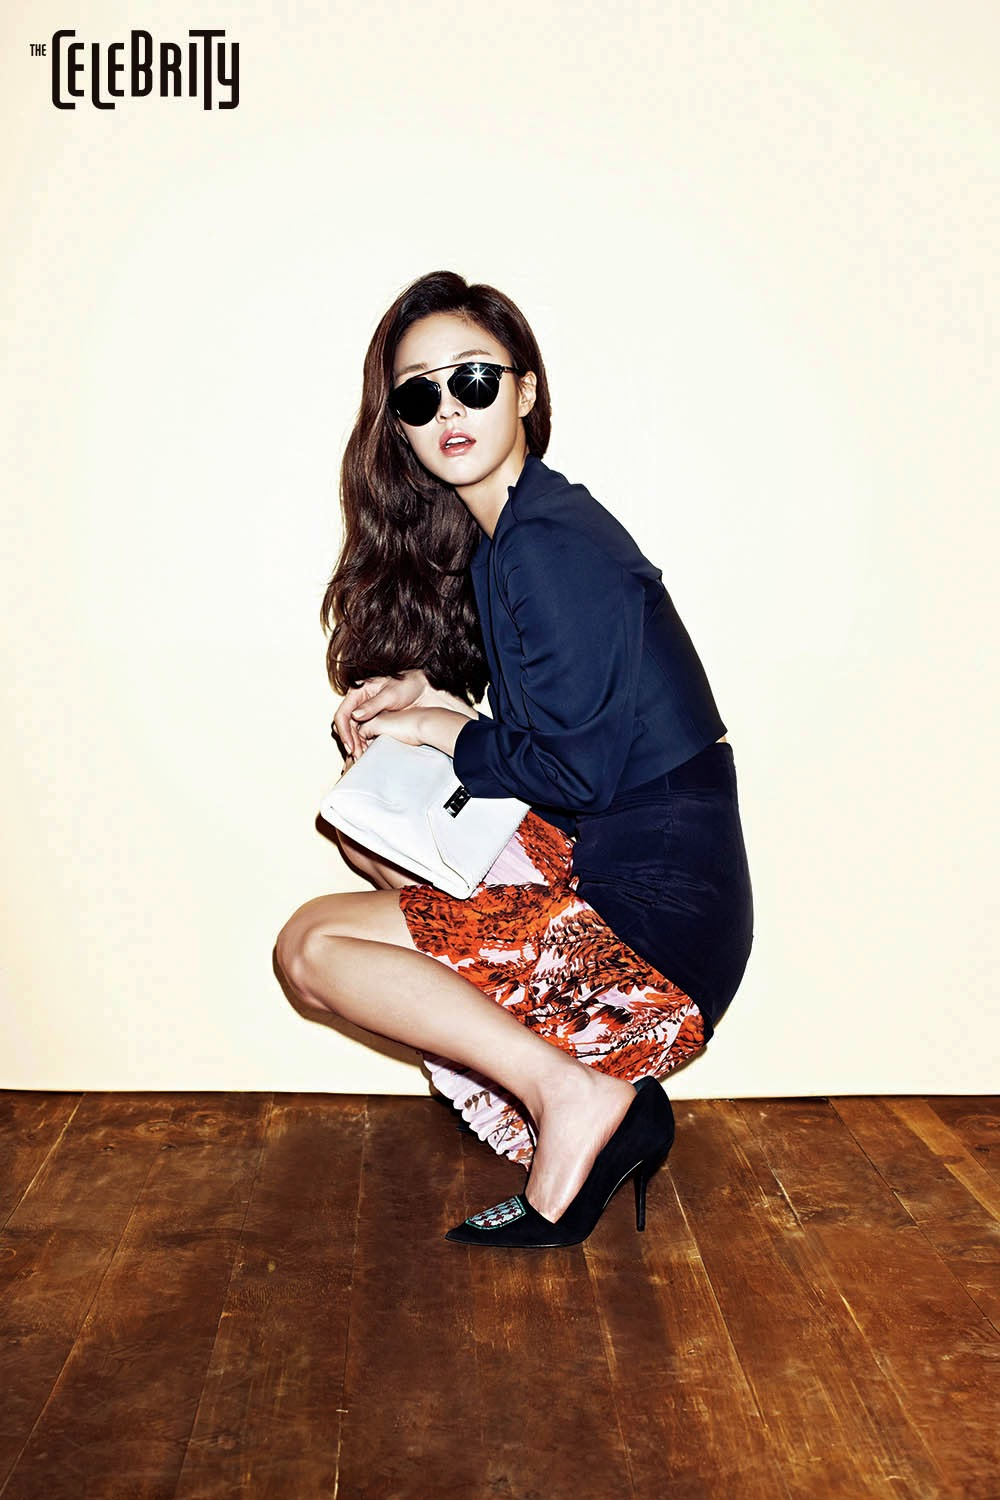 Lee Soo Kyung - The Celebrity Magazine March Issue 2014